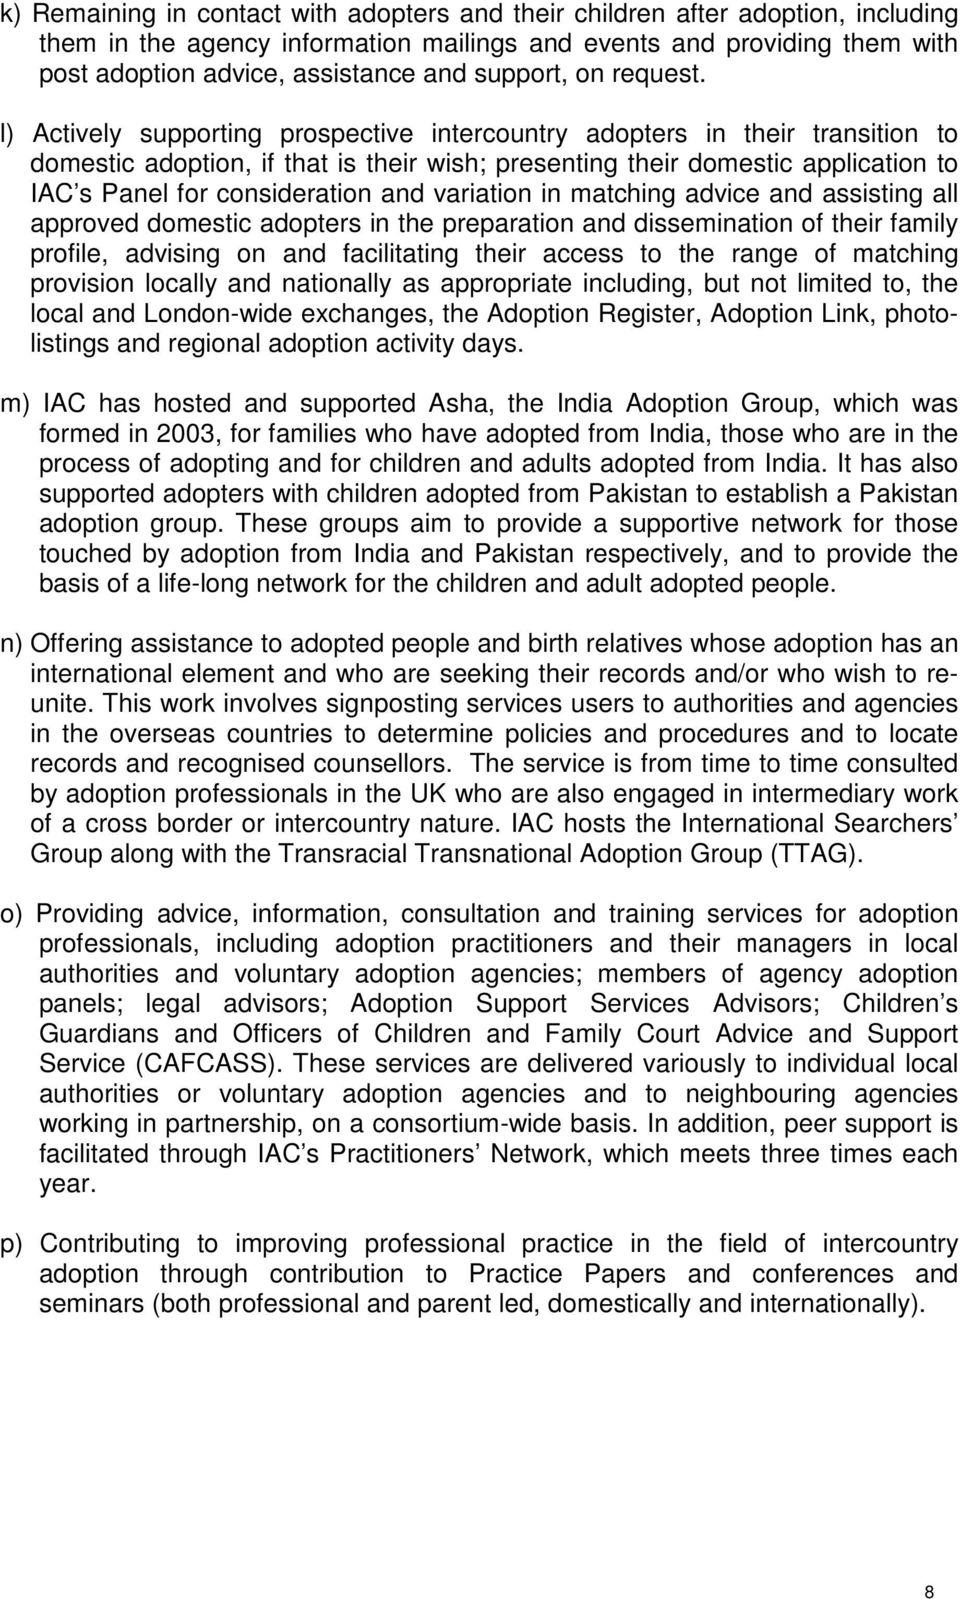 l) Actively supporting prospective intercountry adopters in their transition to domestic adoption, if that is their wish; presenting their domestic application to IAC s Panel for consideration and